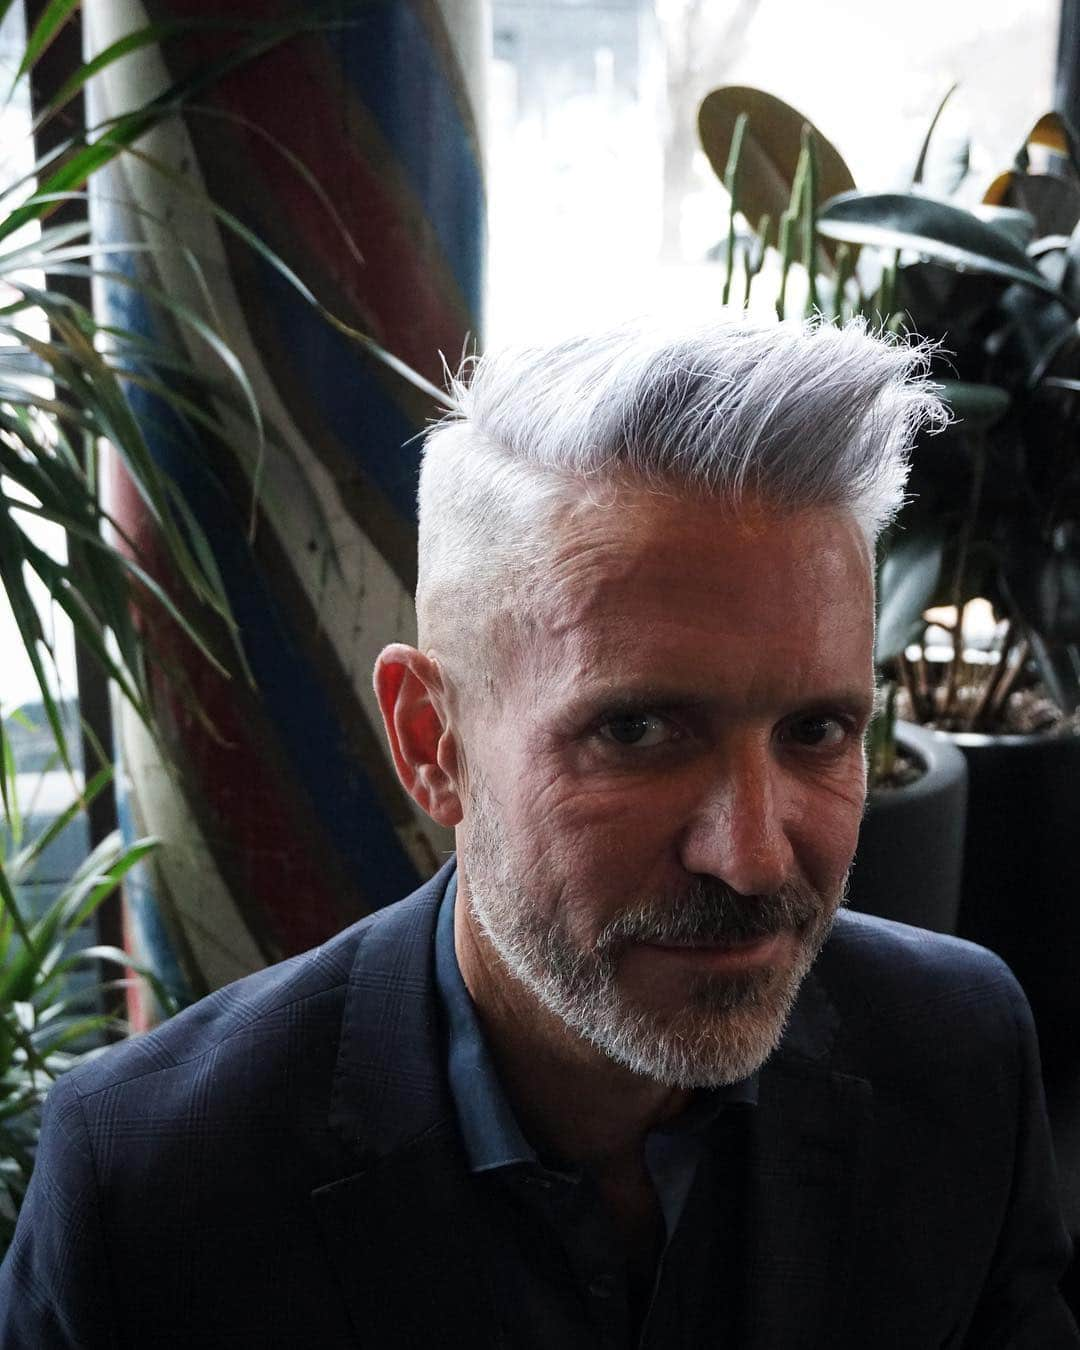 The 12 Best Haircuts for Older Men - The Modest Man